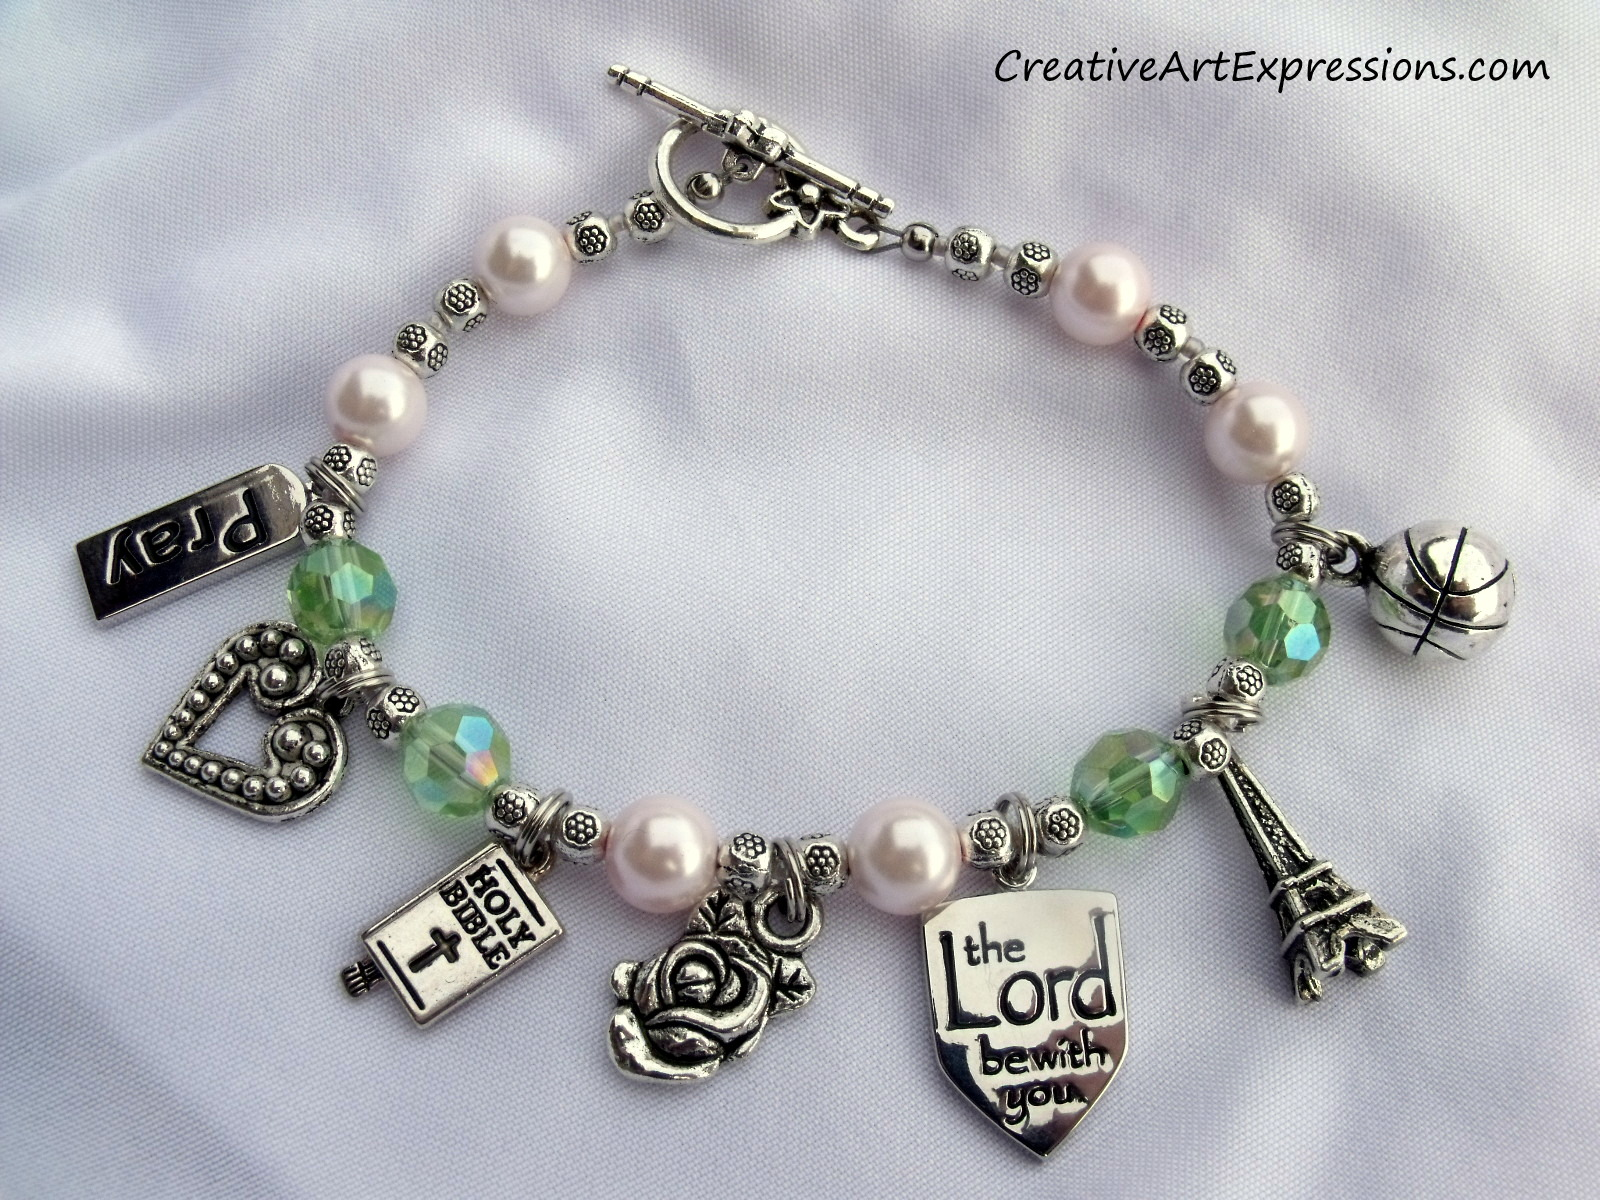 Creative Art Expressions Handmade Pink & Green Charm Bracelet